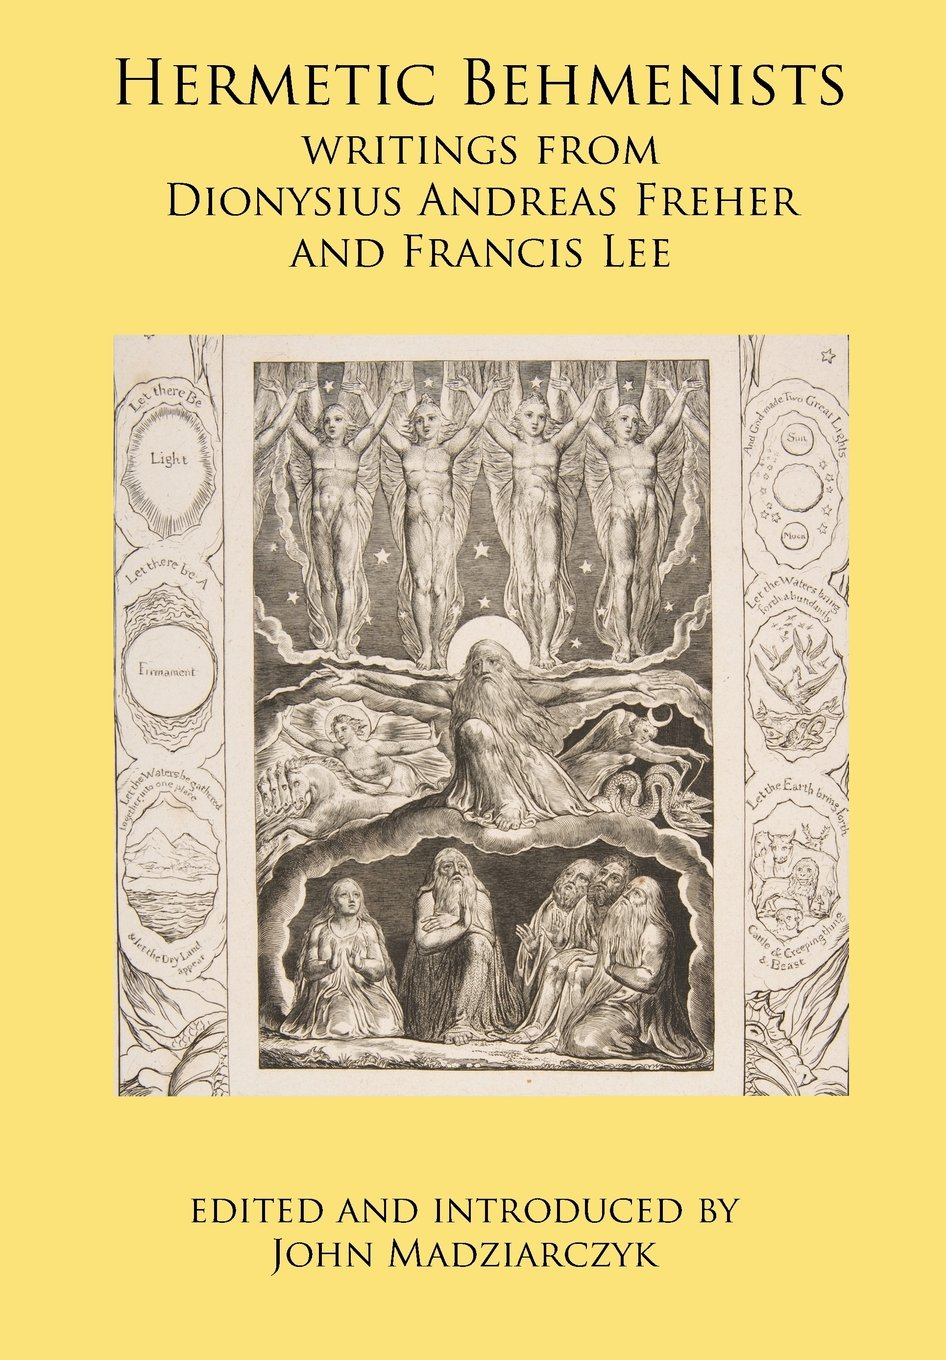 Hermetic Behmenists: Writings from Dionysius Andreas Freher and Francis  Lee: Dionysius Andreas Freher, Assistant Professor Department of Thematic  Studies